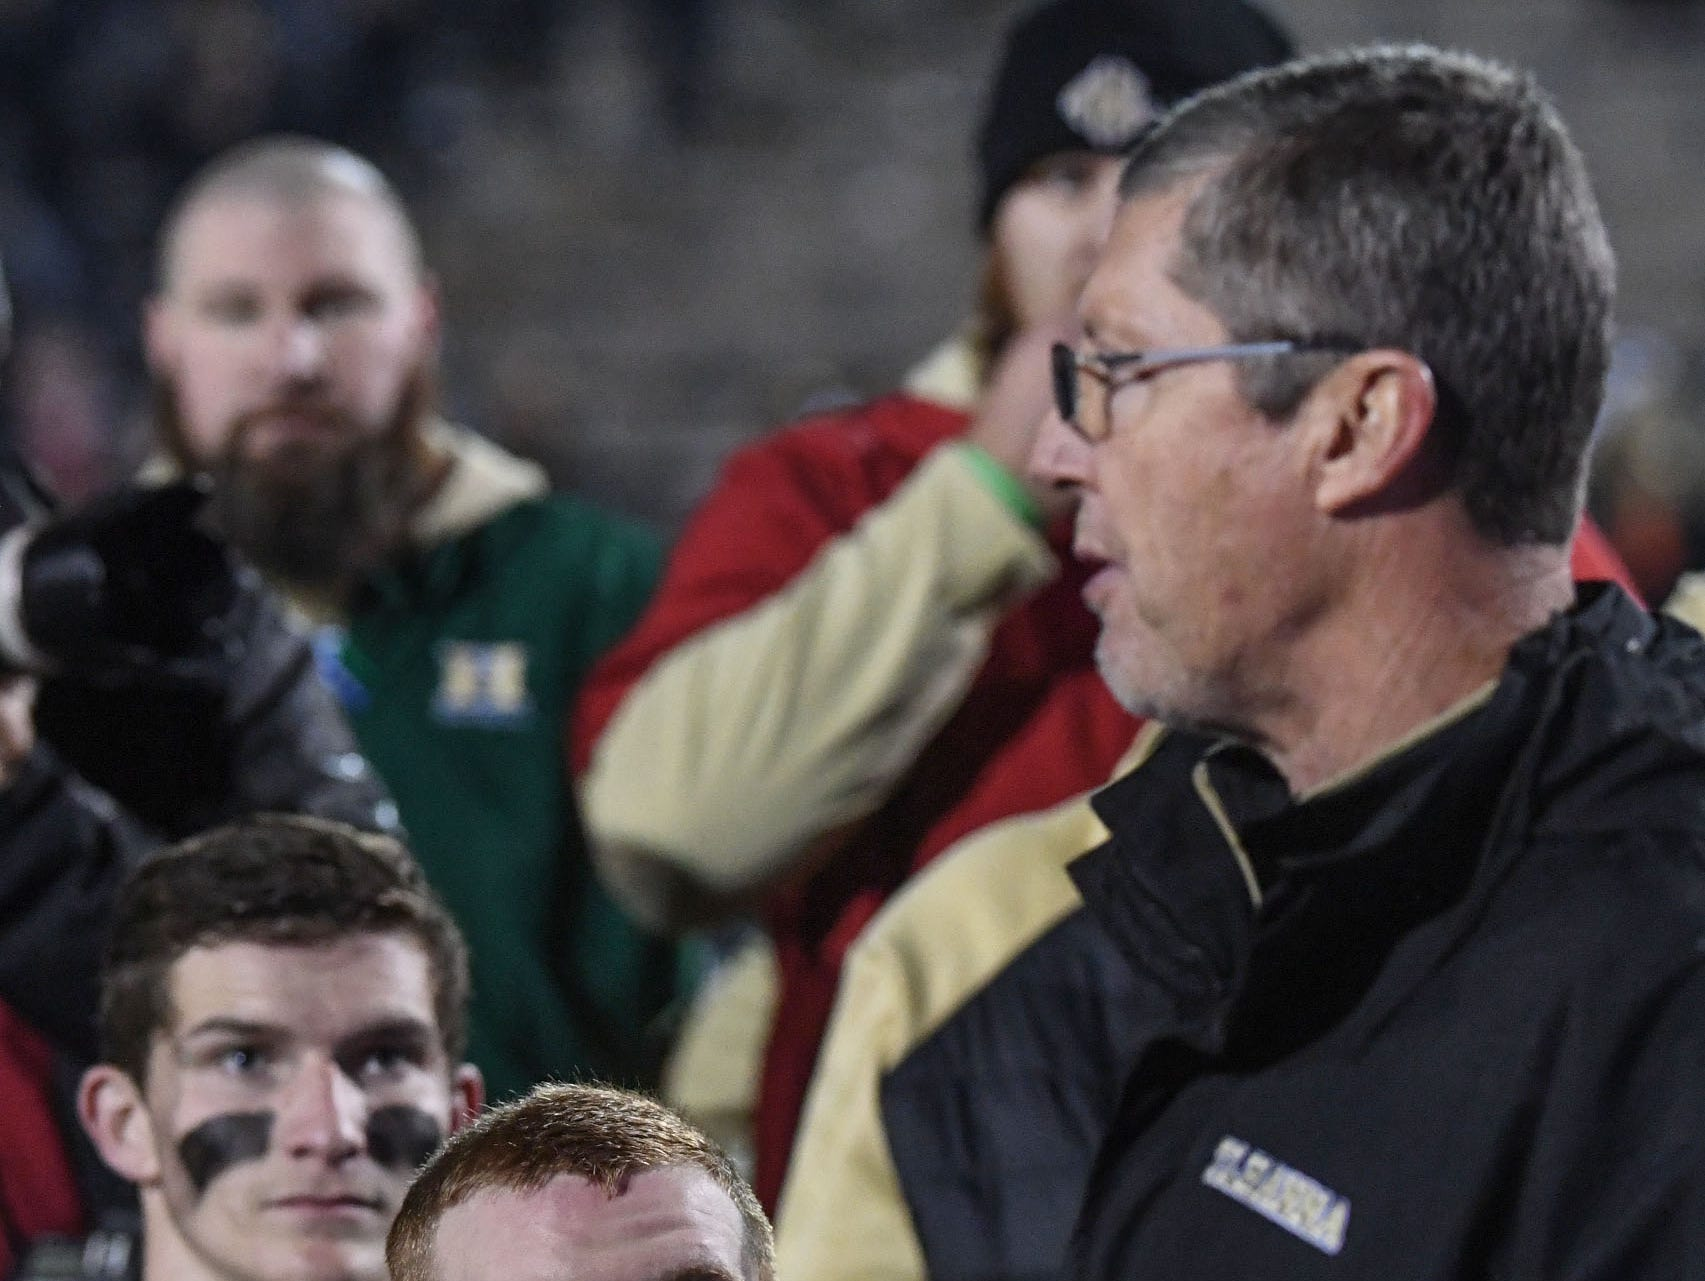 TL Hanna senior Alex Meredith (1) looks up listening to head coach Jeff Herron after a 57-28 TL Hanna High School win over Byrnes High School after the game of the Class AAAAA state playoffs at TL Hanna High School in Anderson on Friday, November 30, 2018.